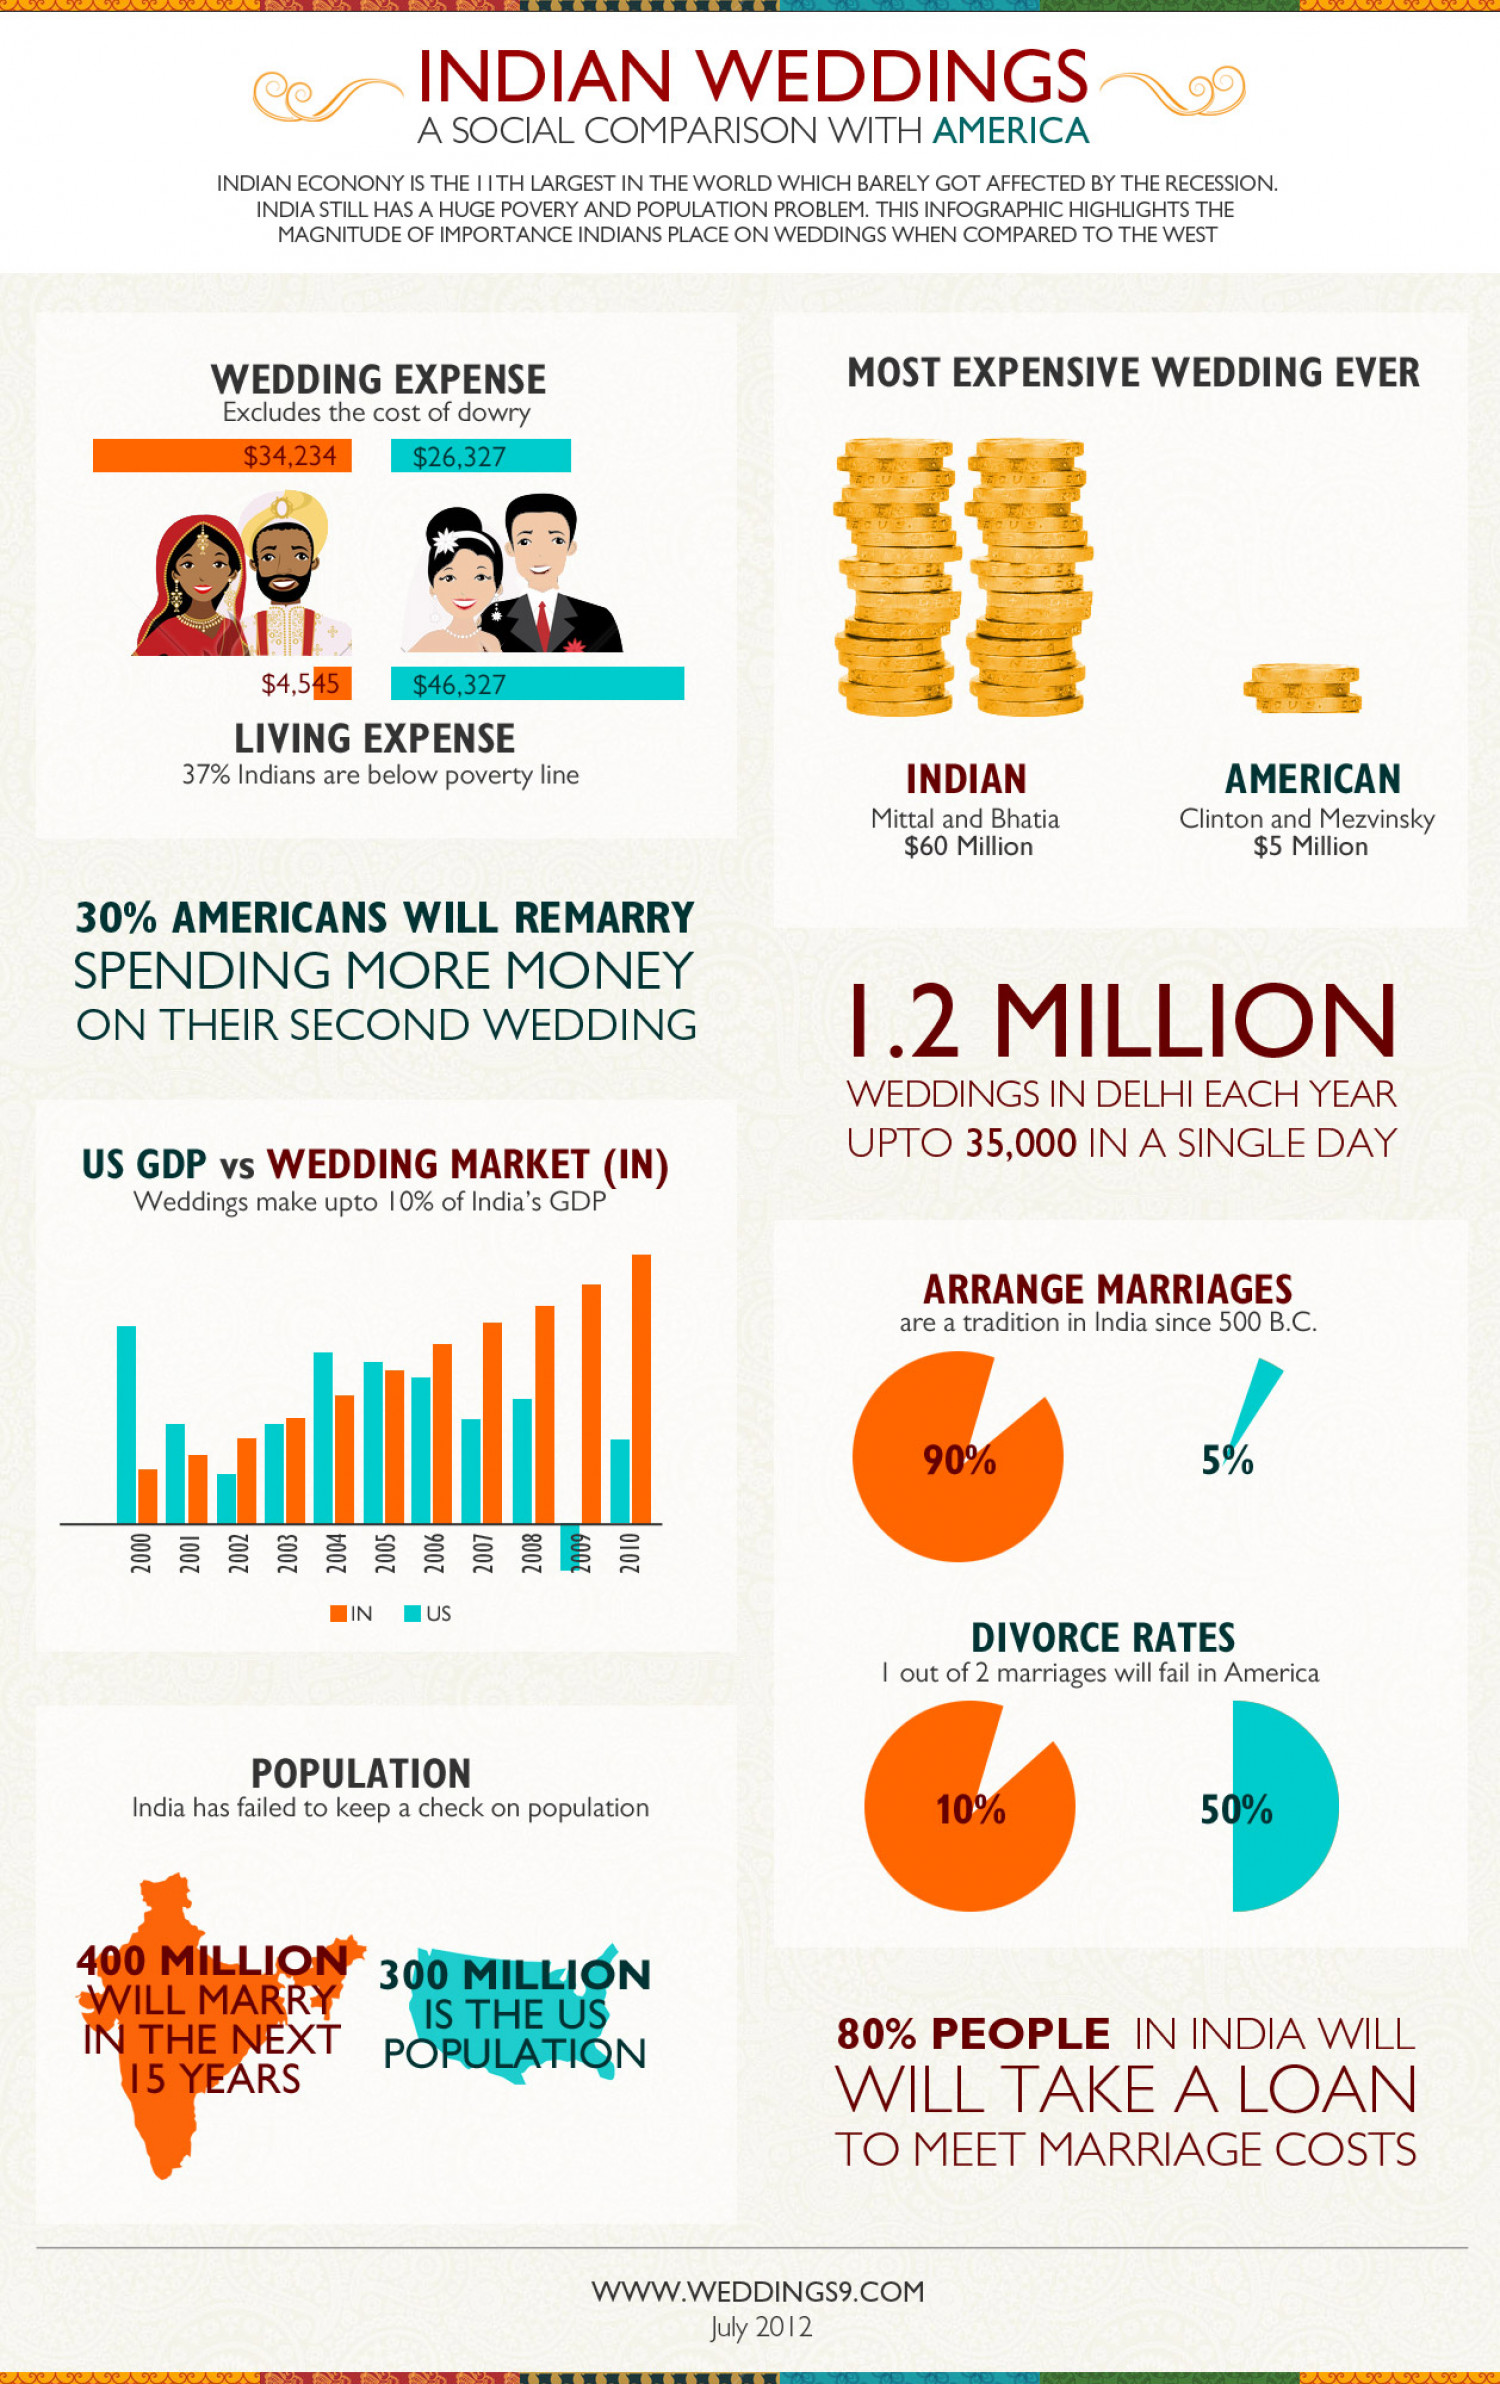 Indian Weddings A Social Comparison With America